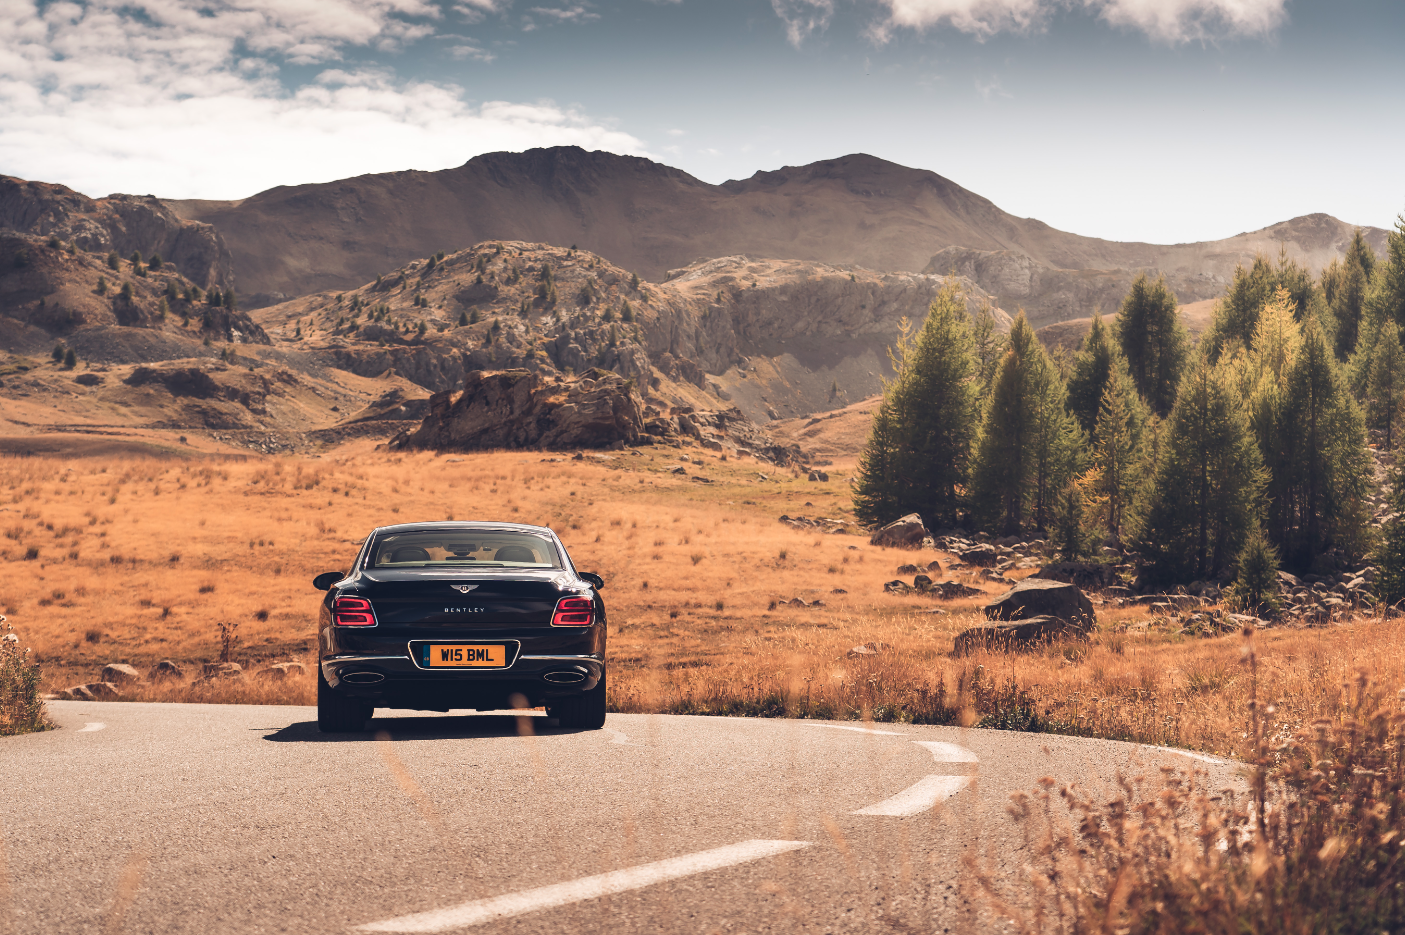 The New Bentley Flying Spur Is Surprisingly Nimble On The Narrow Roads Of Monaco